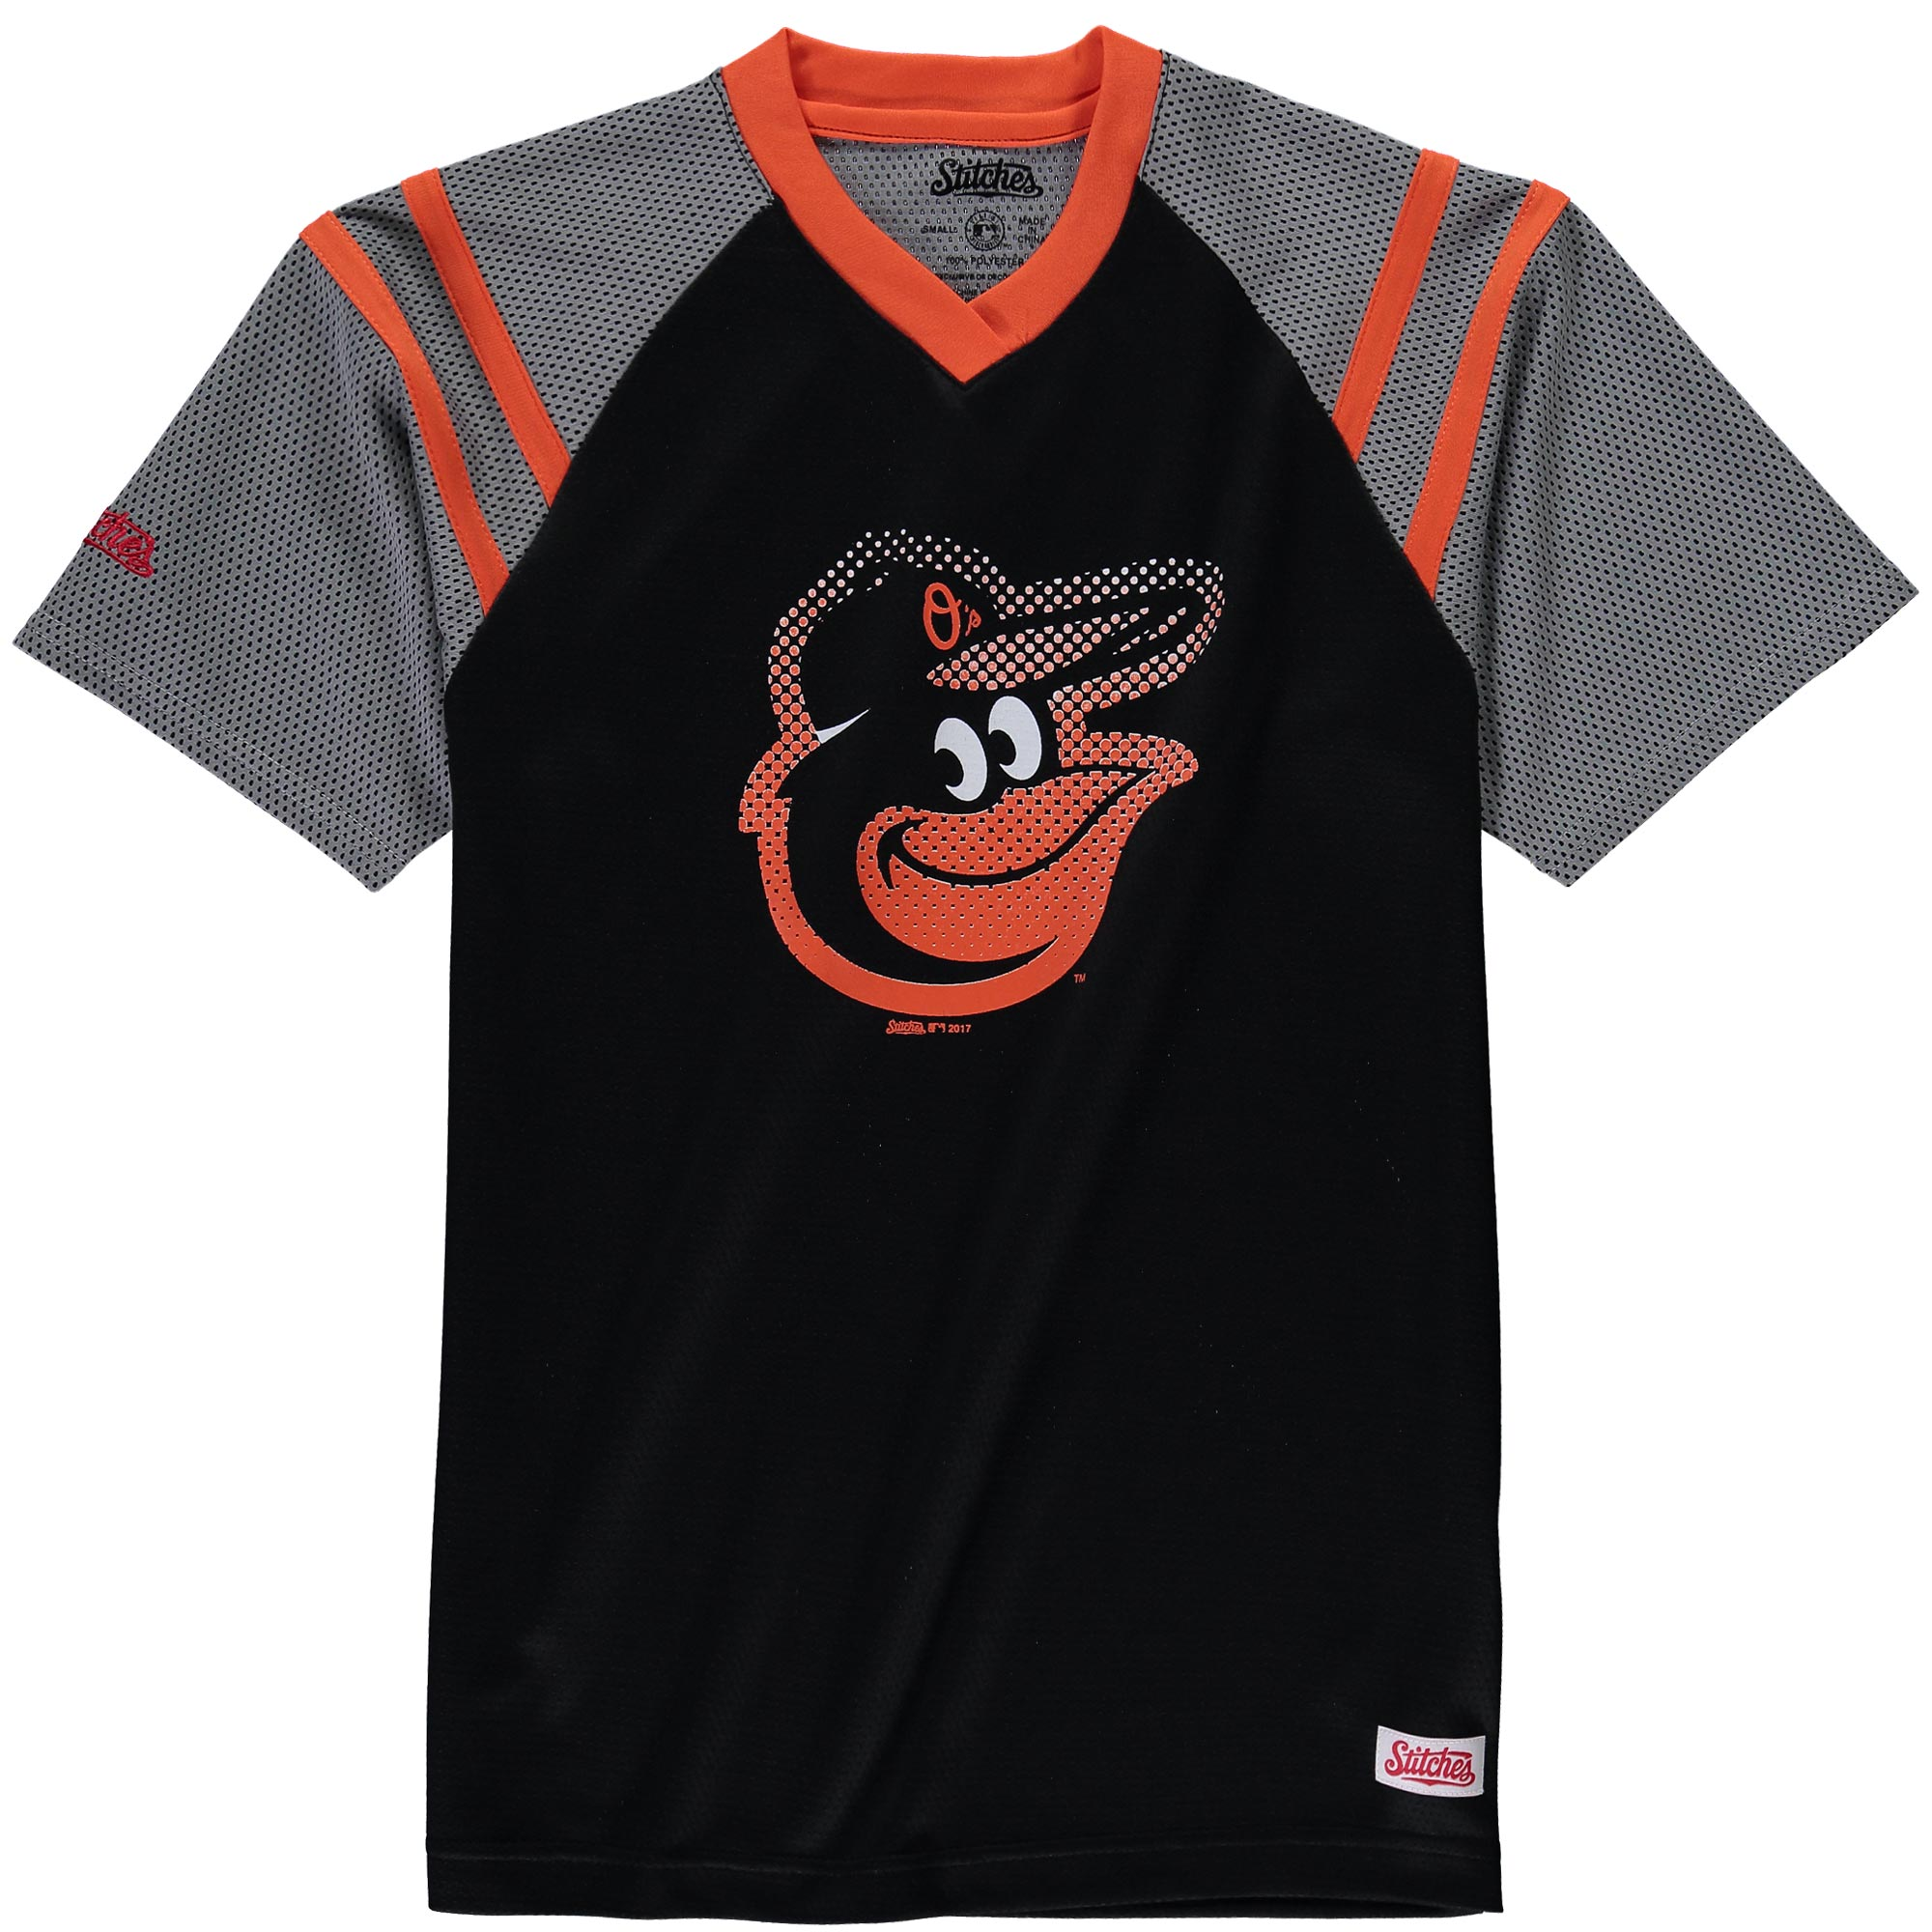 Baltimore Orioles Stitches Youth Mesh V-Neck Jersey T-Shirt - Black/Orange